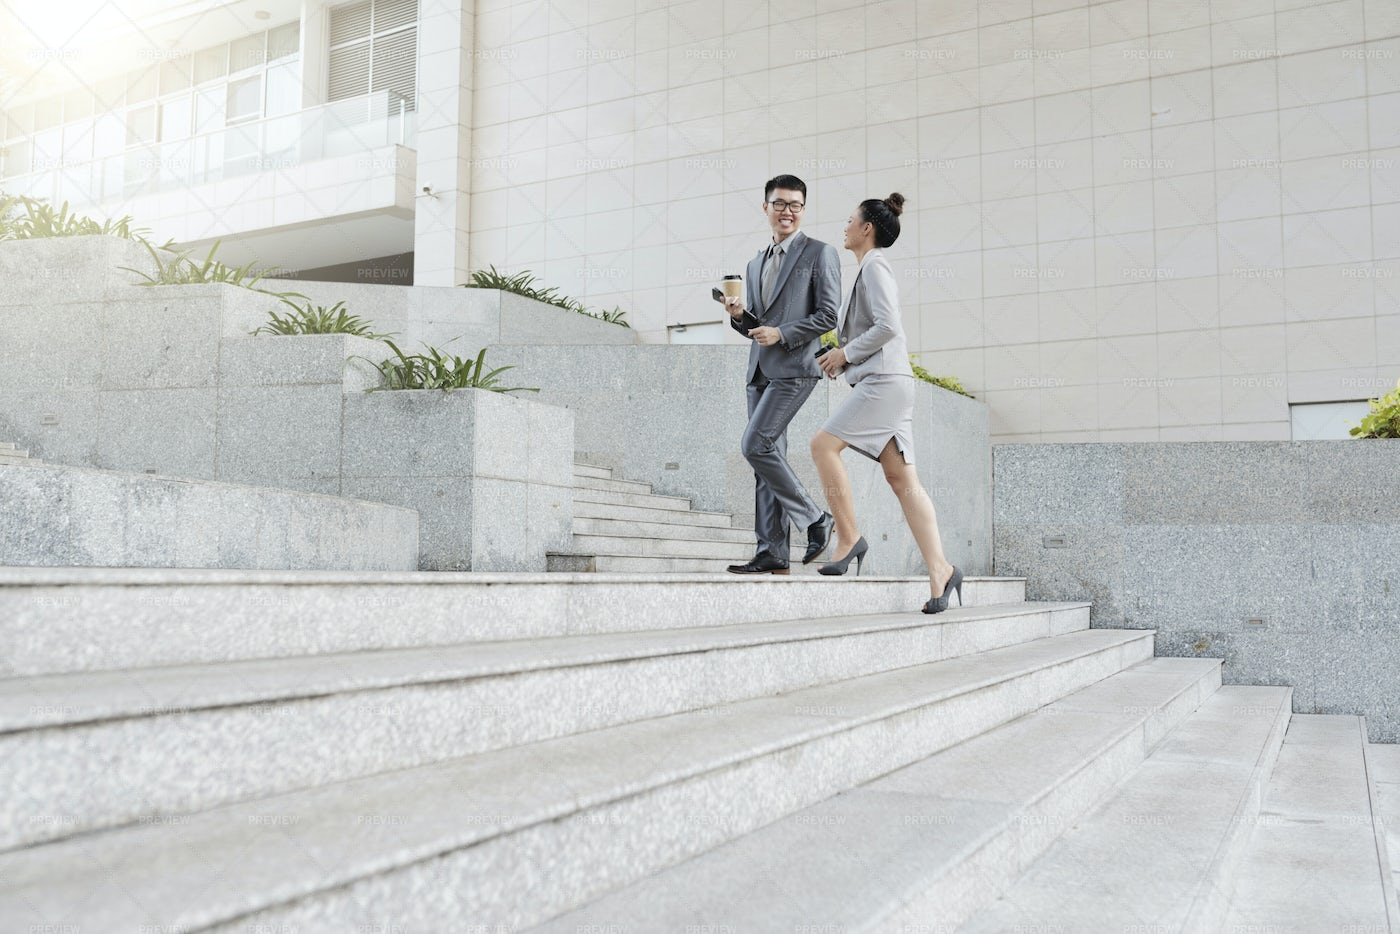 Business People Walking To Office: Stock Photos